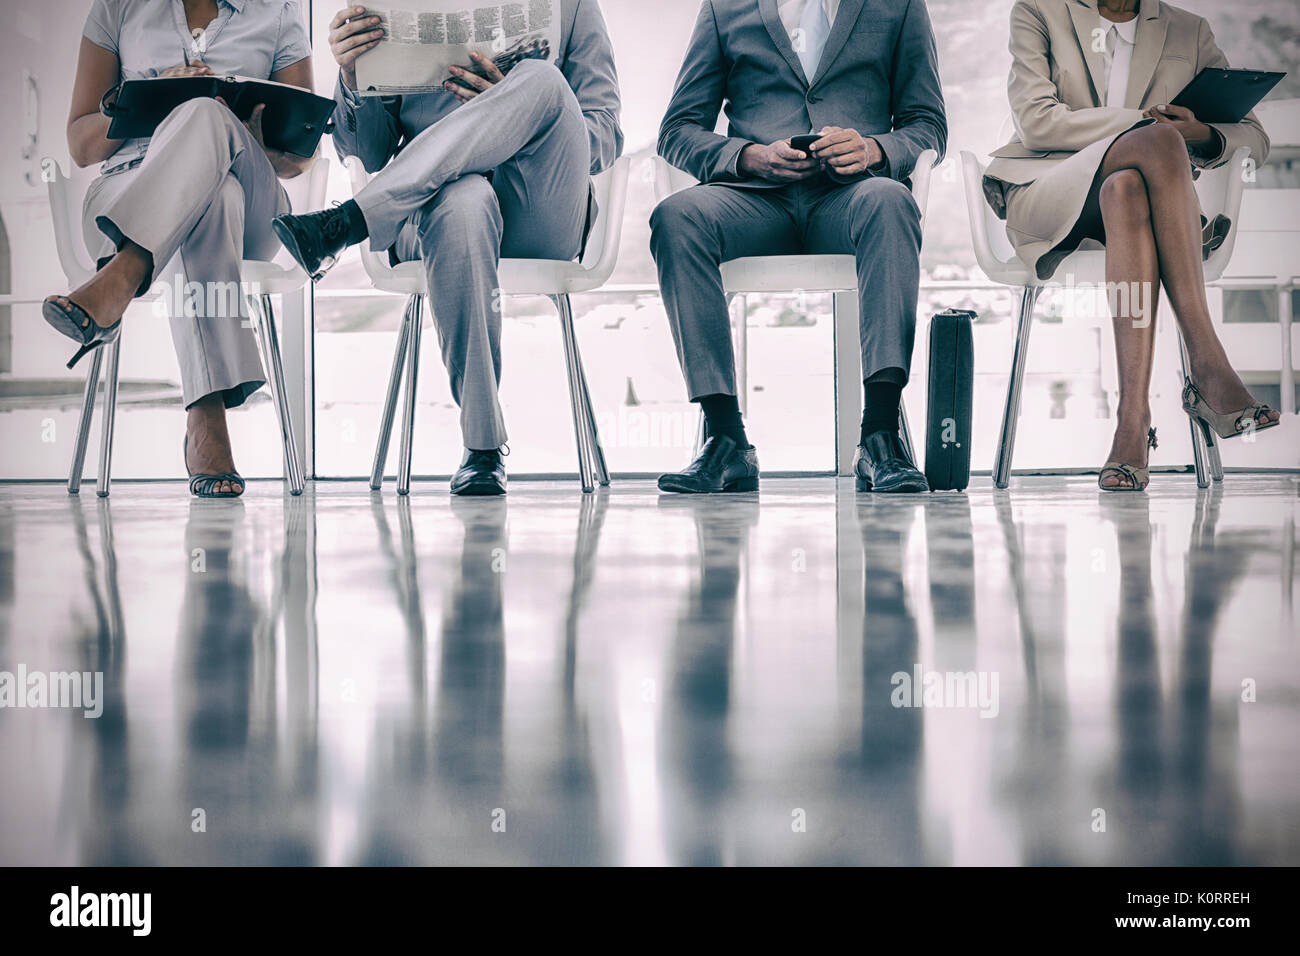 Group of well dressed business people waiting in waiting room - Stock Image